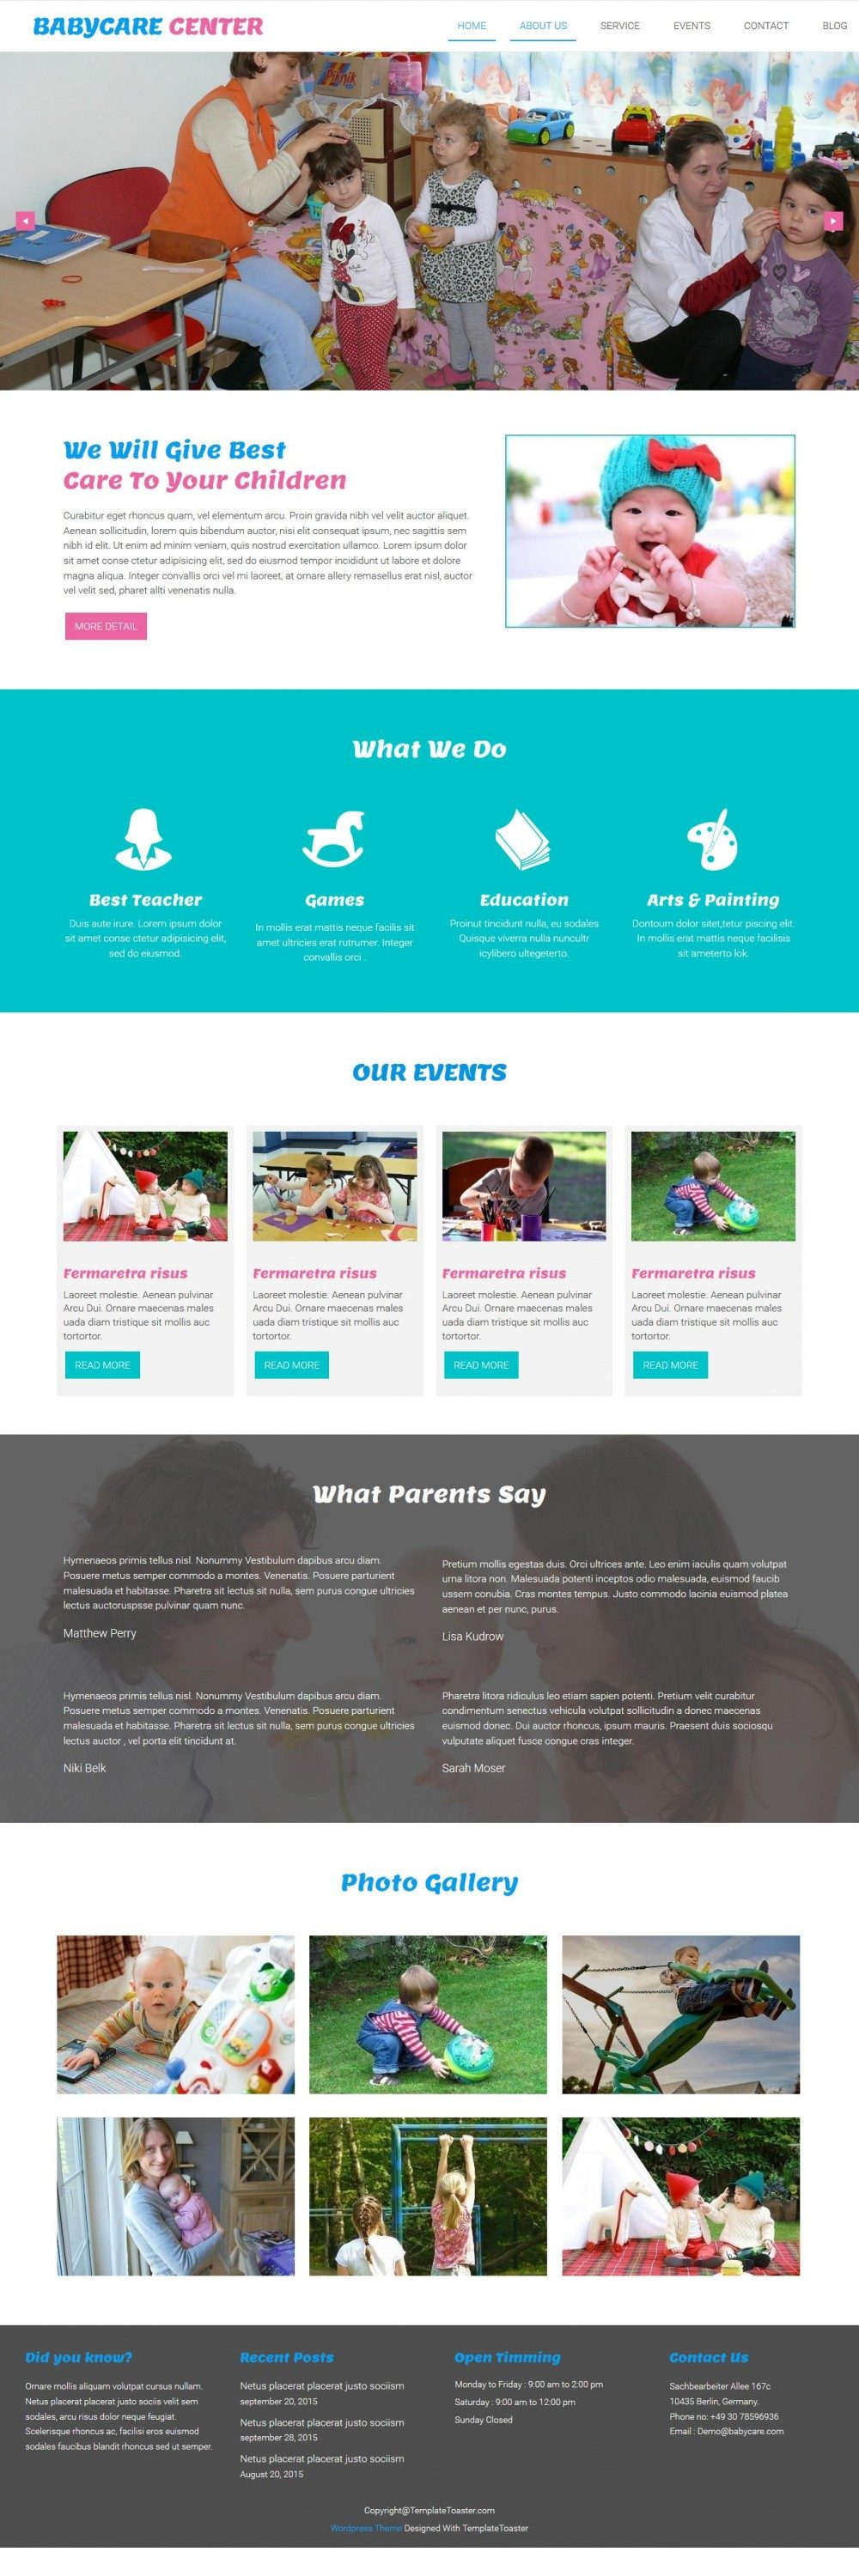 Babycare Center - Best Joomla Template For Baby Care Taker